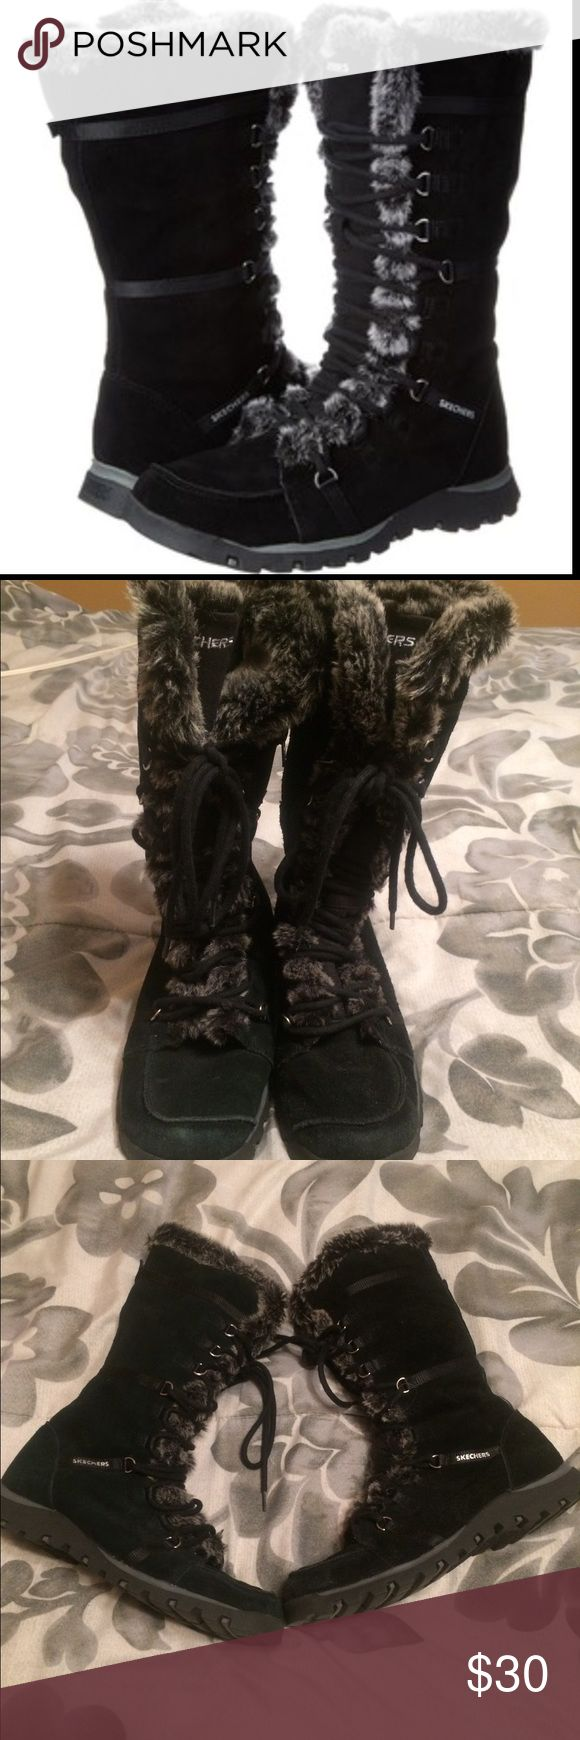 Sketchers black boots size 9 Super cute warm fuzzy black boots from Sketchers size 9. Super comfortable. Bottoms very clean. One boot has a greenish tint to them but looks cute either way and could be washed or dyed to fix if wanted. Skechers Shoes Winter & Rain Boots